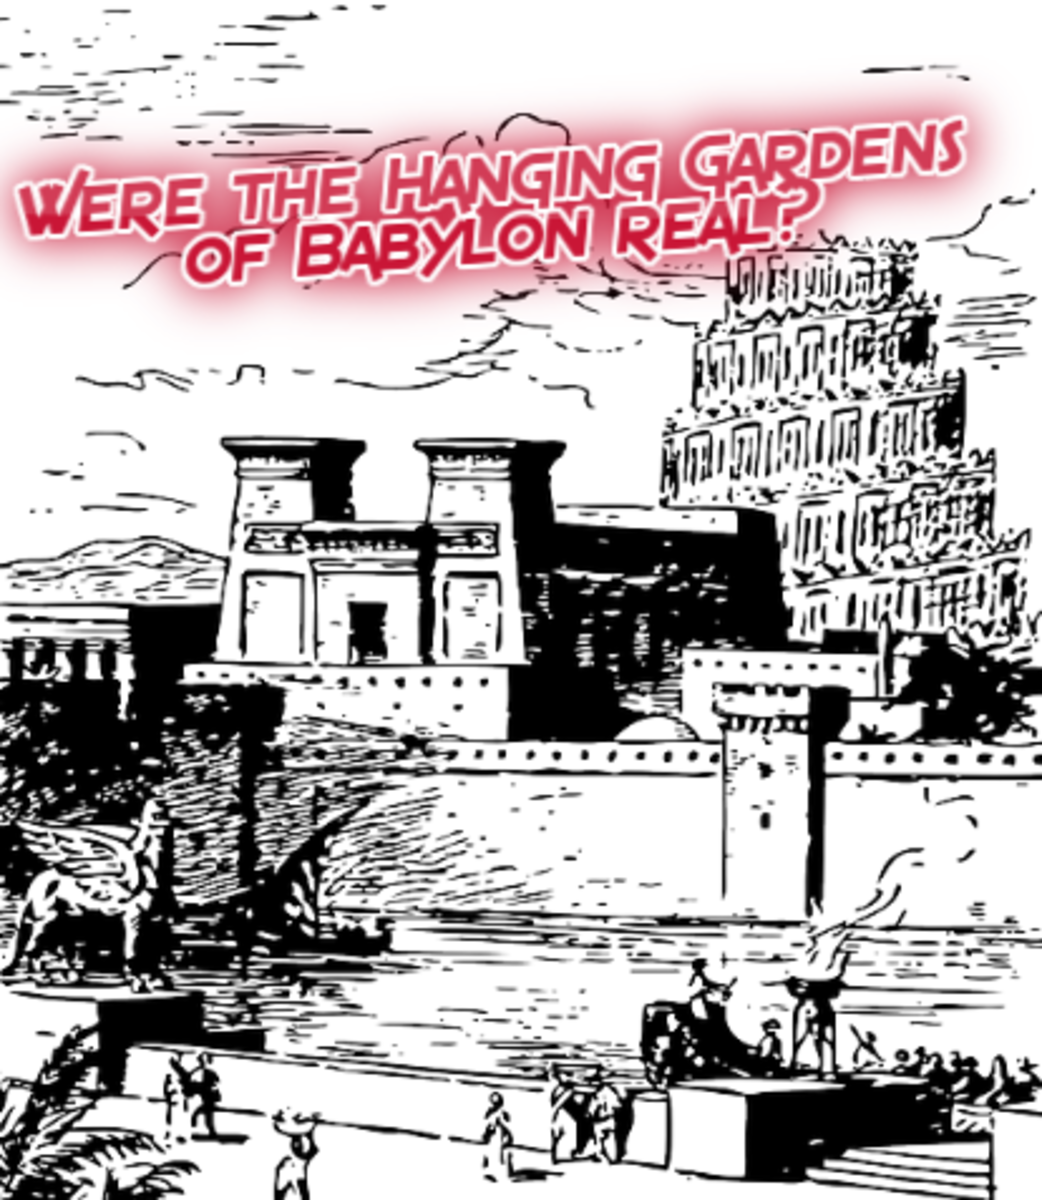 Controversy - Hanging Gardens of Babylon Facts and Five Possible Locations